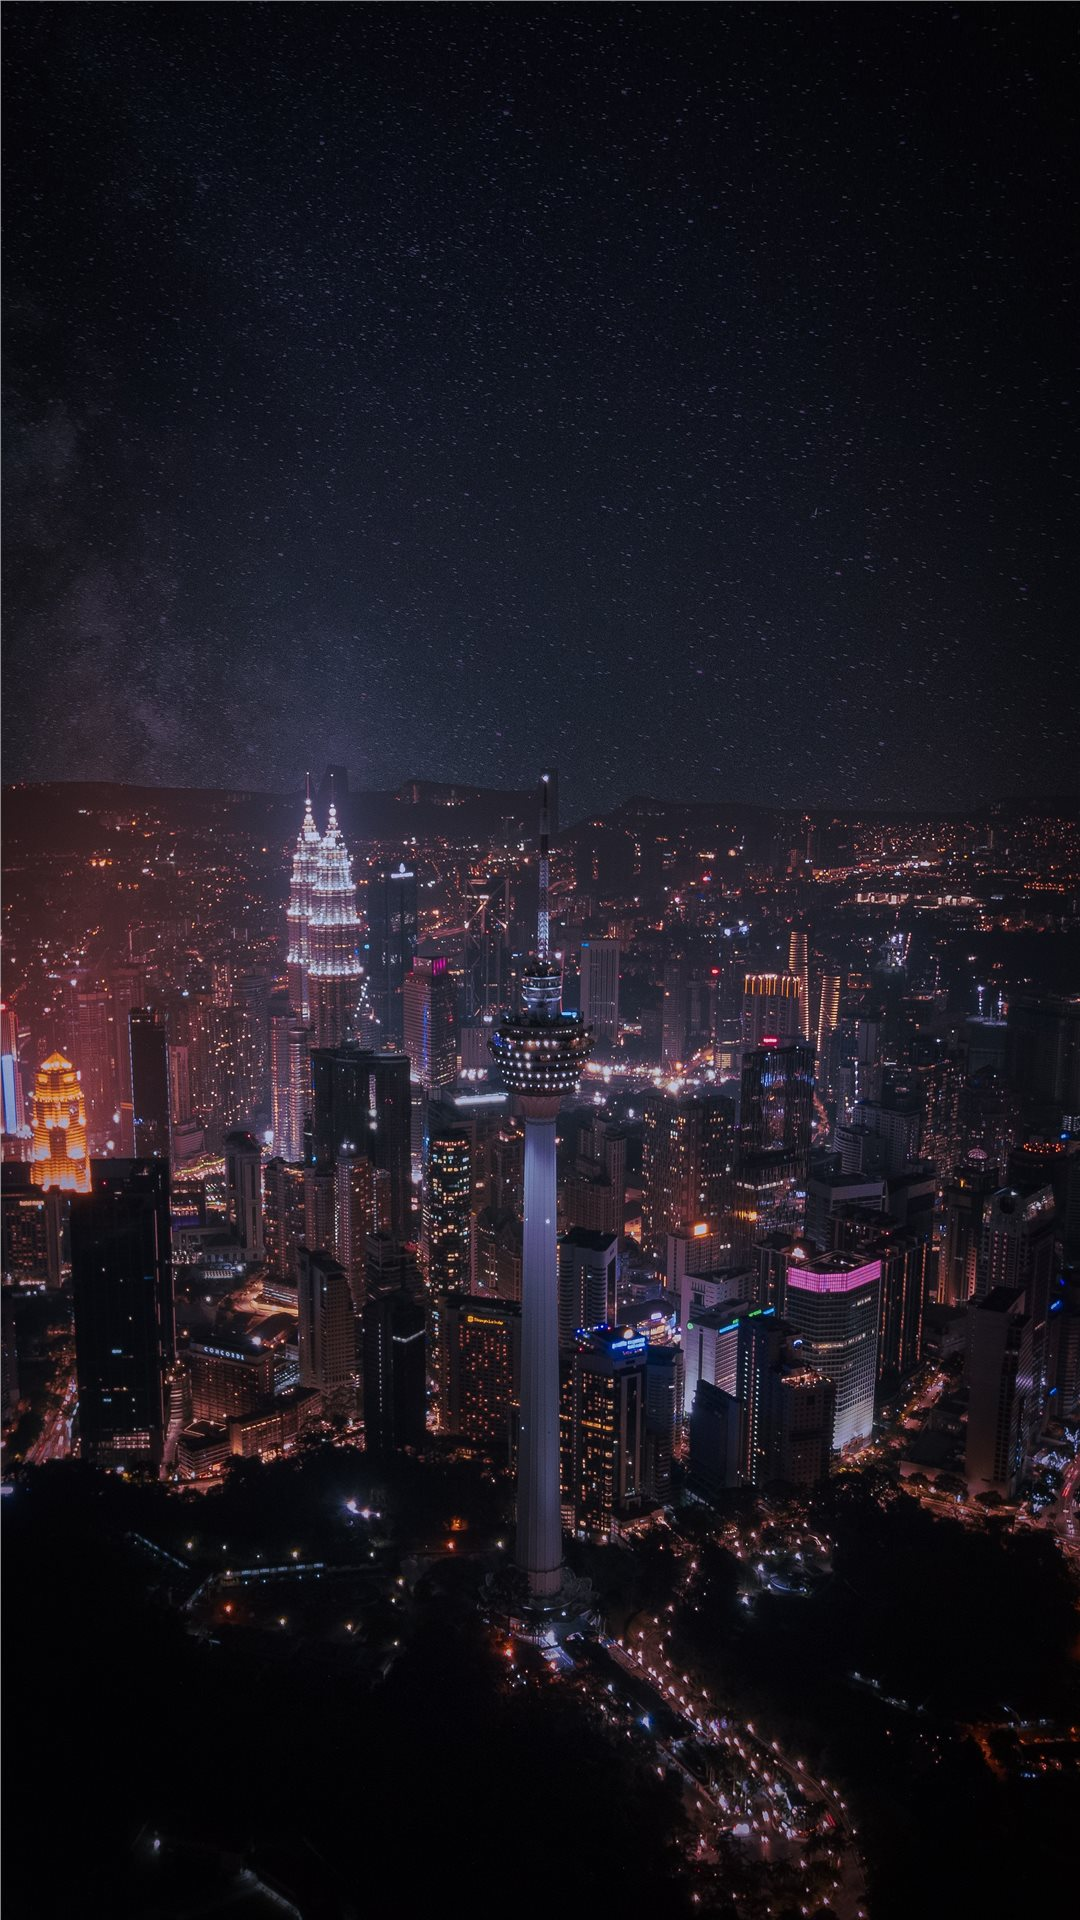 imaginary kuala lumpur iphone 8 wallpaper download | iphone